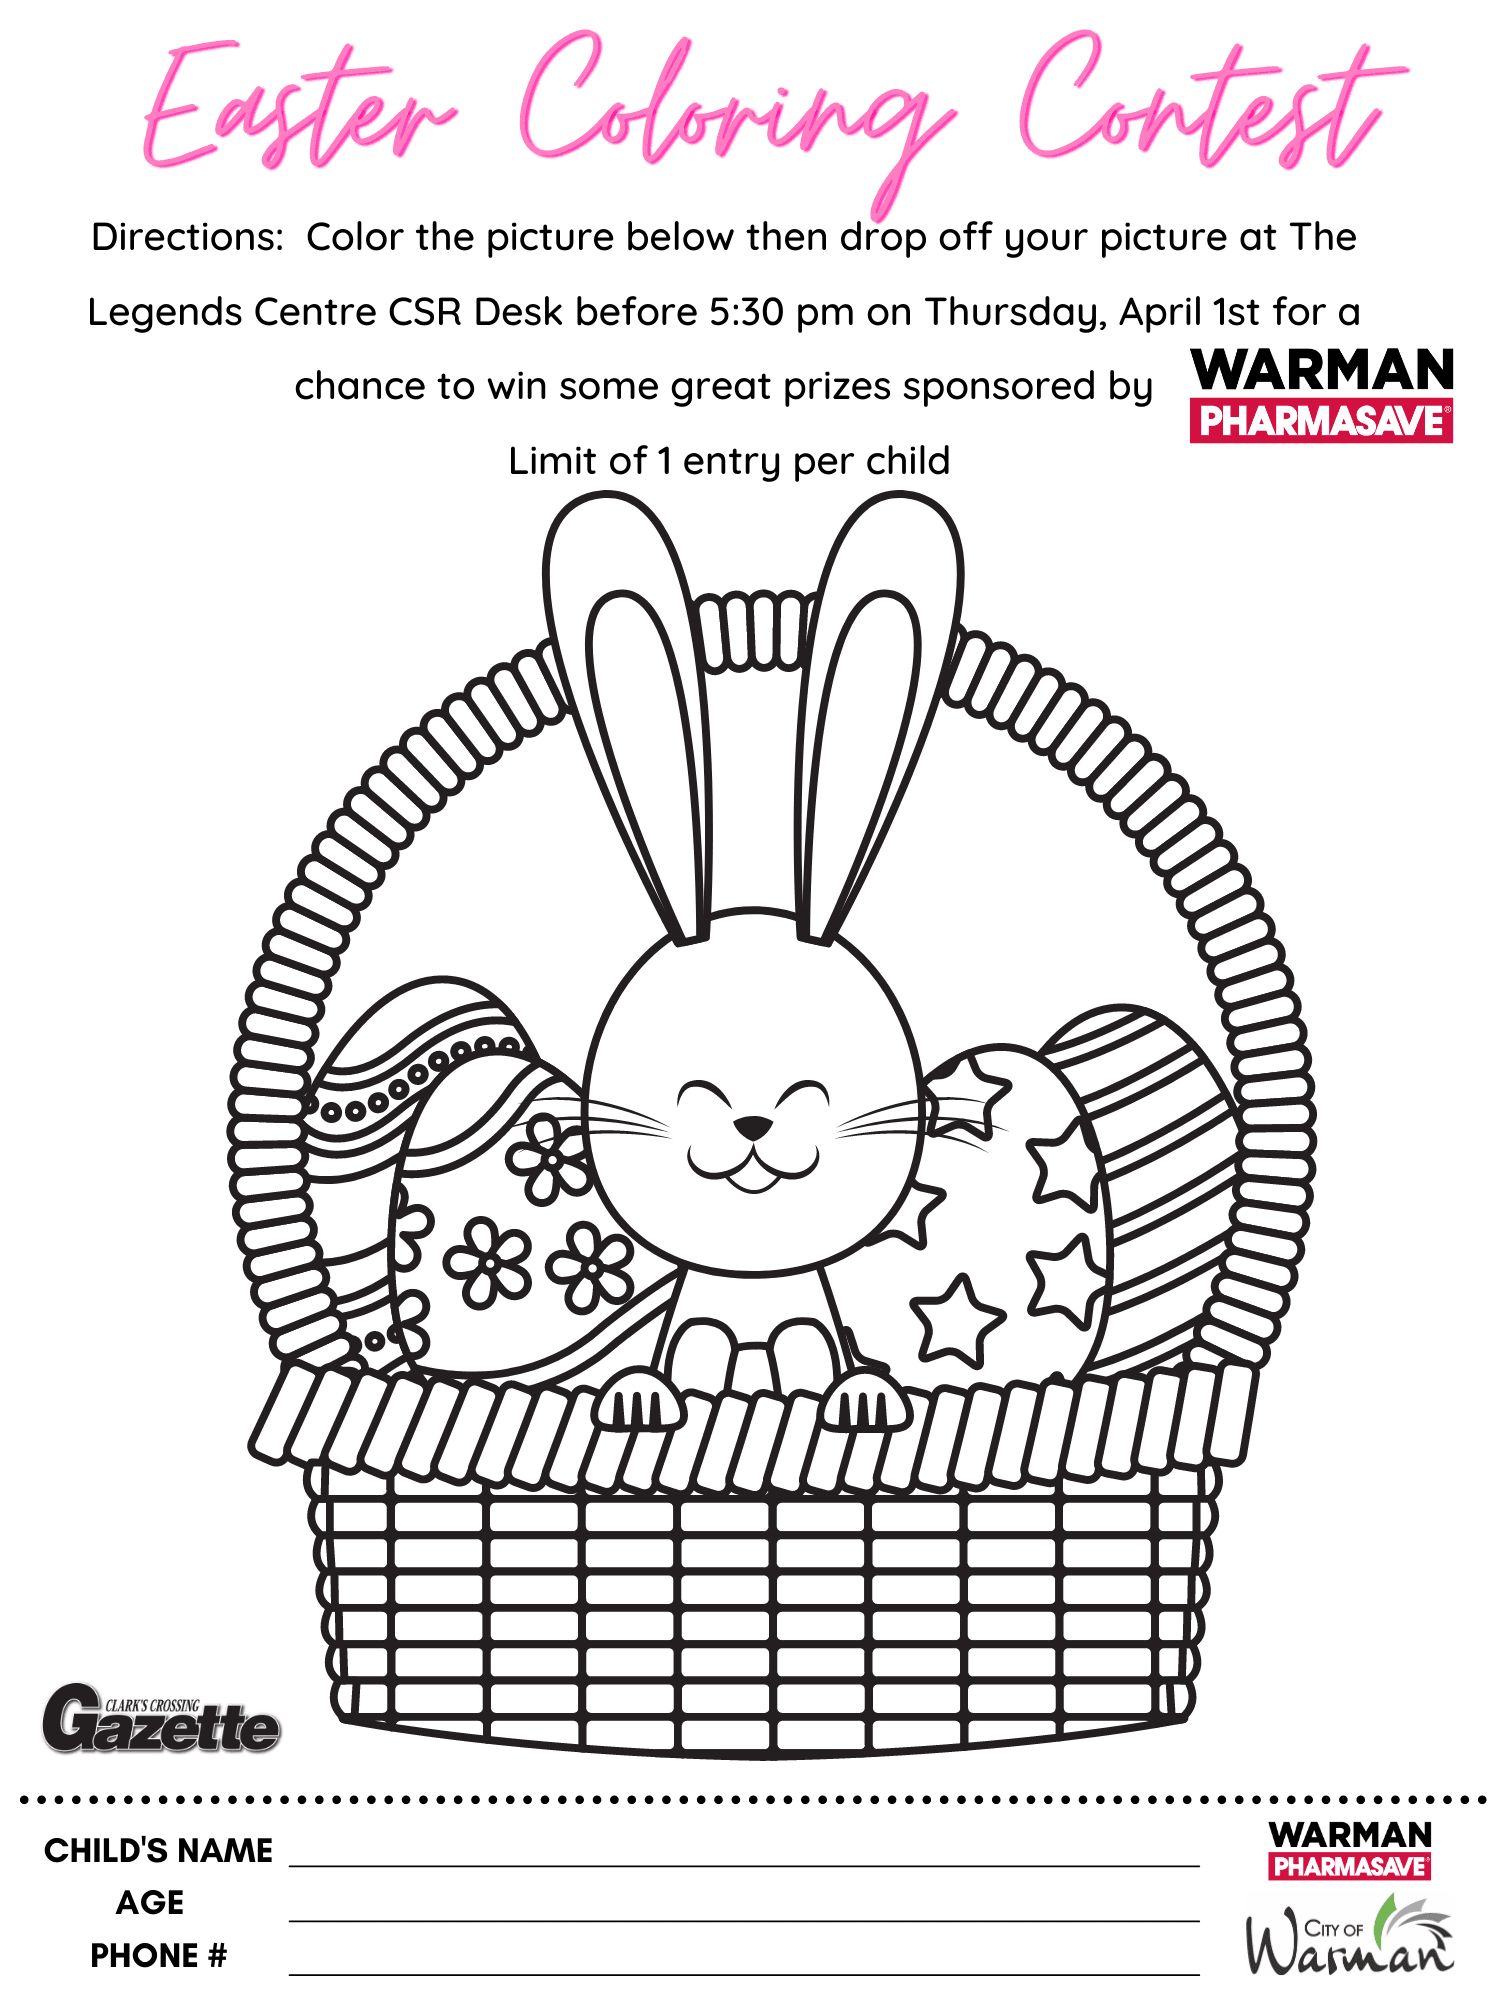 Easter Egg Coloring Page 2021